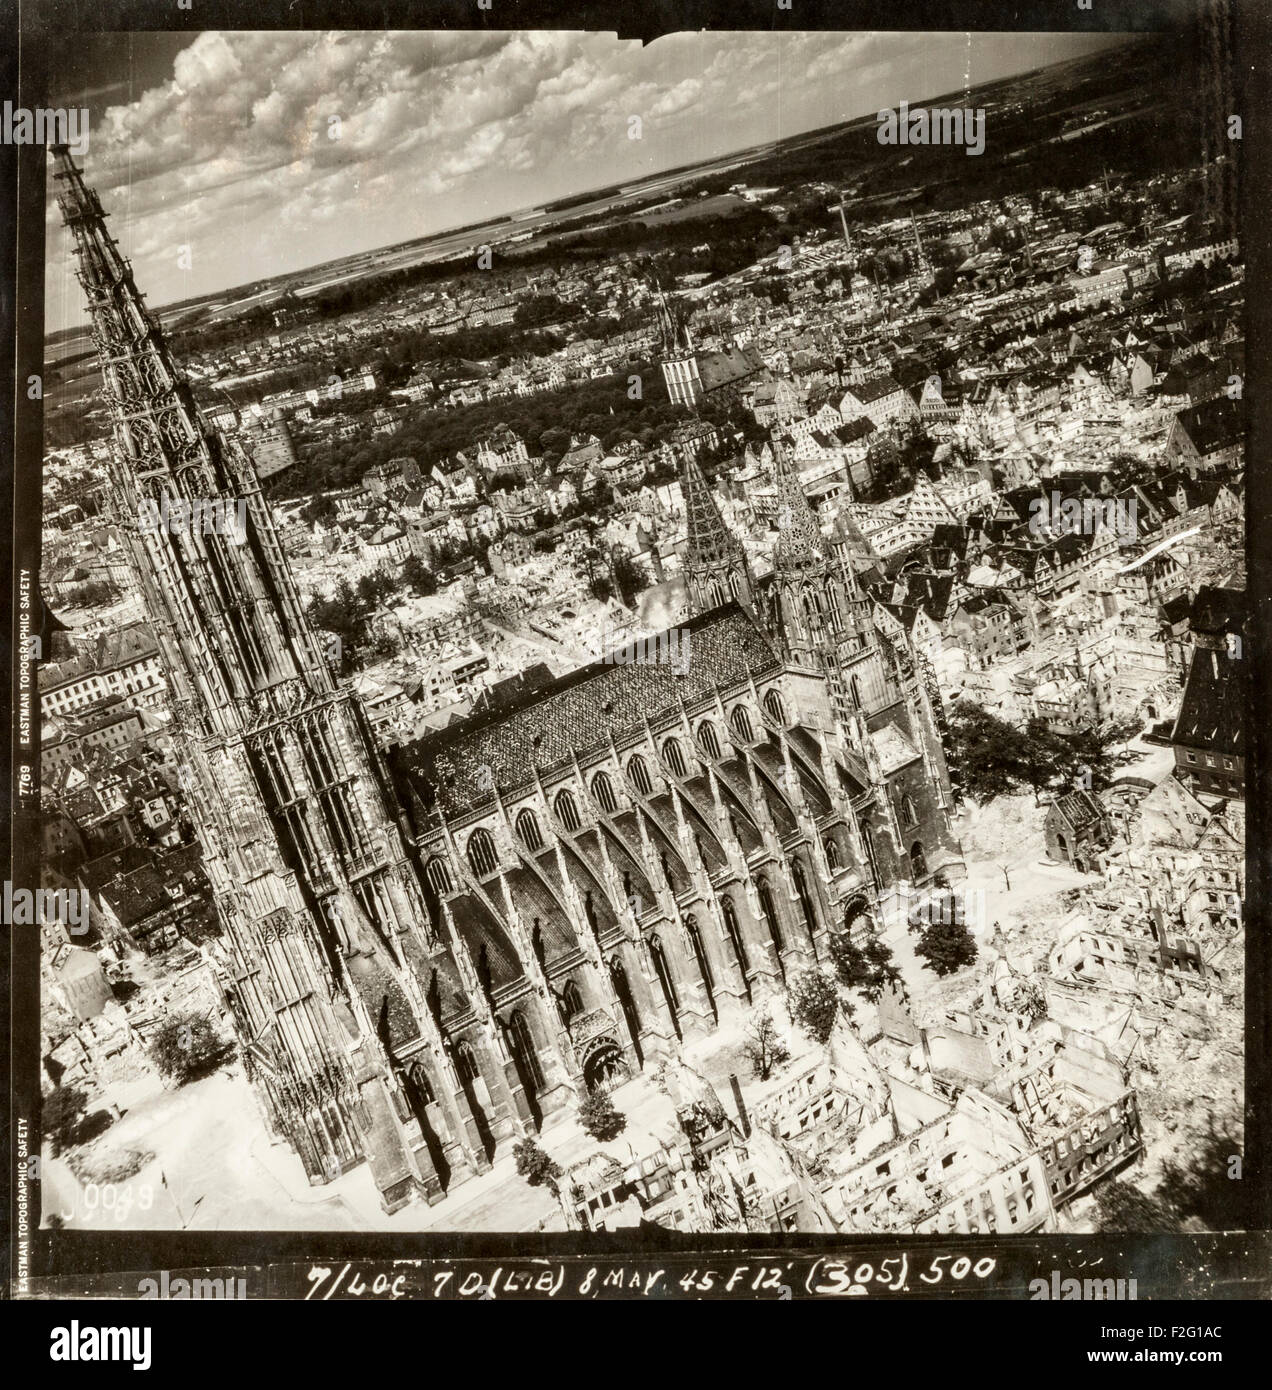 Aerial photograph of the German city of Ulm taken after the devastating air raid of December 1944, showing the huge destruction caused by Allied bombing yet leaving the church, Ulm Minster, largely intact. Most of the city's medieval centre was destroyed by the bombing. The church, also known as Ulm Cathedral, Ulm Münster or Ulmer Münster has the tallest spire of any church in the world (161.5m). The church was built between approximately 1400 and 1540, though the steeples were not completed until 1890. Stock Photo